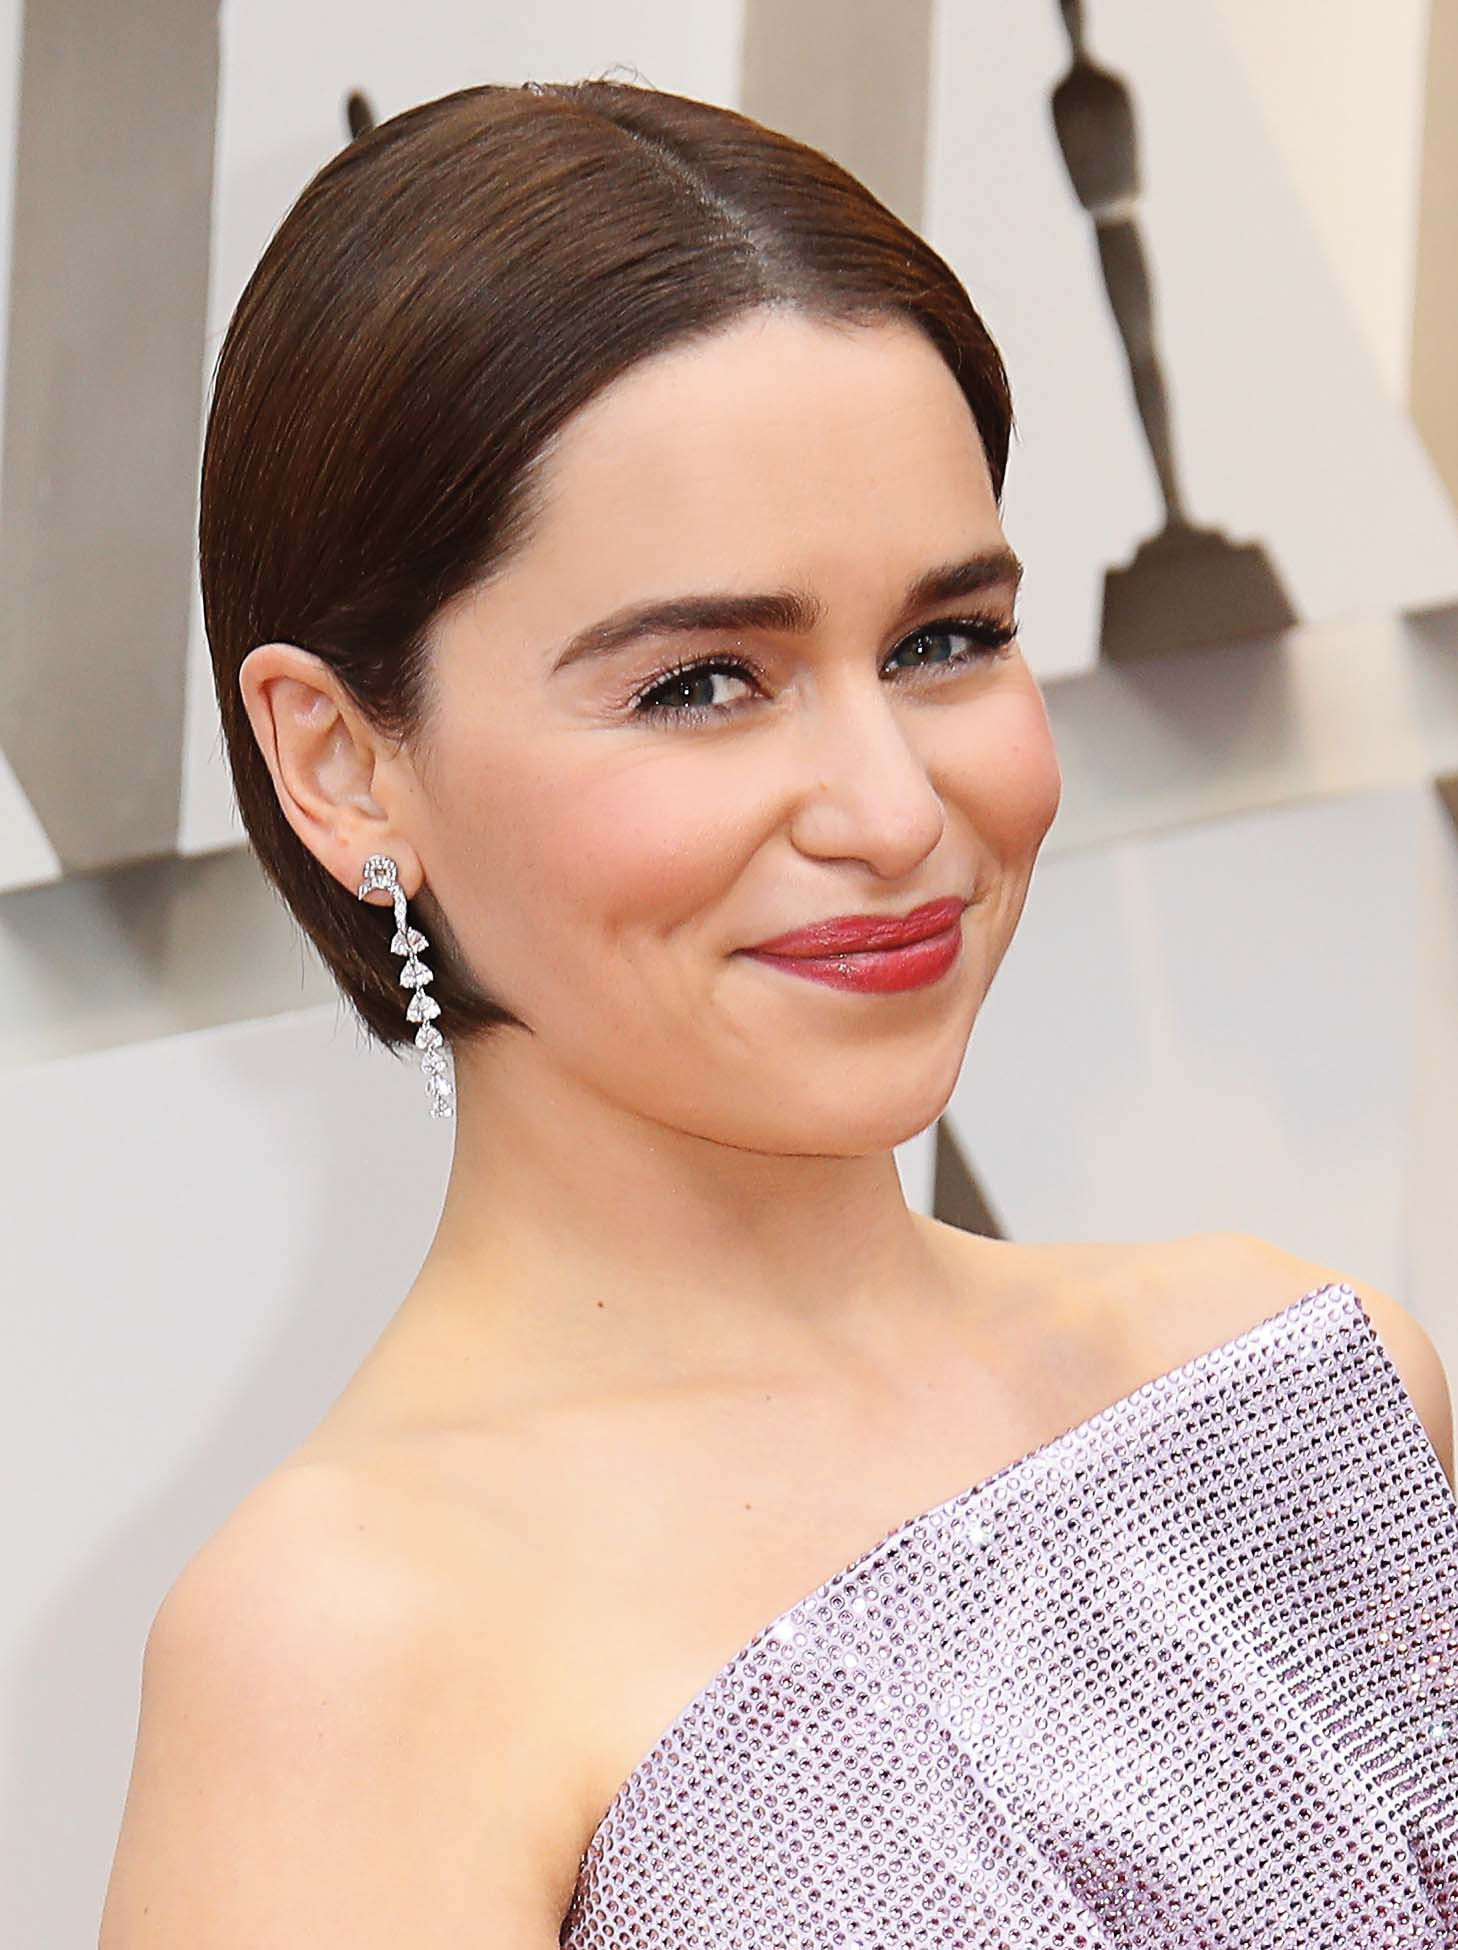 HOLLYWOOD, CA - FEBRUARY 24: Emilia Clarke attends the 91st Annual Academy Awards at Hollywood and Highland on February 24, 2019 in Hollywood, California. (Photo by Dan MacMedan/Getty Images)